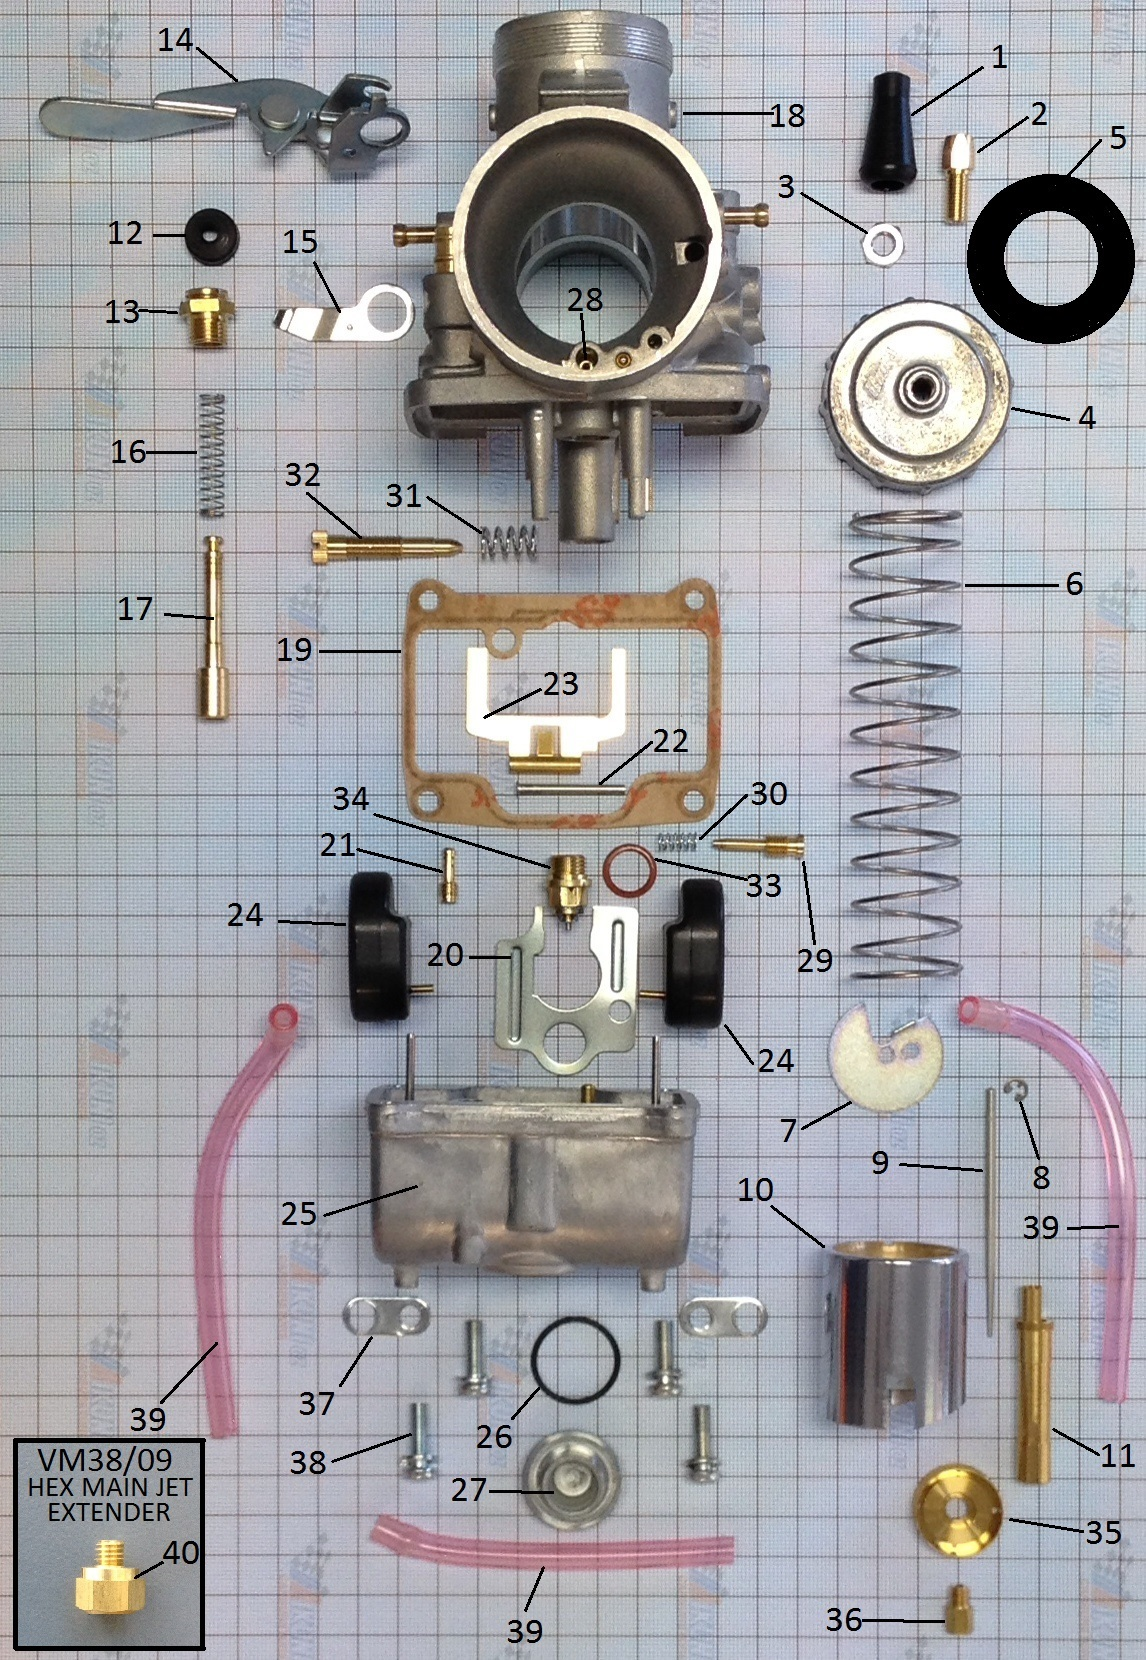 BODY Seats Replacement together with 2006 Nissan Sentra Fuel Pressure Regulator Location together with Air Blast Circuit Breaker in addition Watch as well Gearpumps. on fuel pump diagram